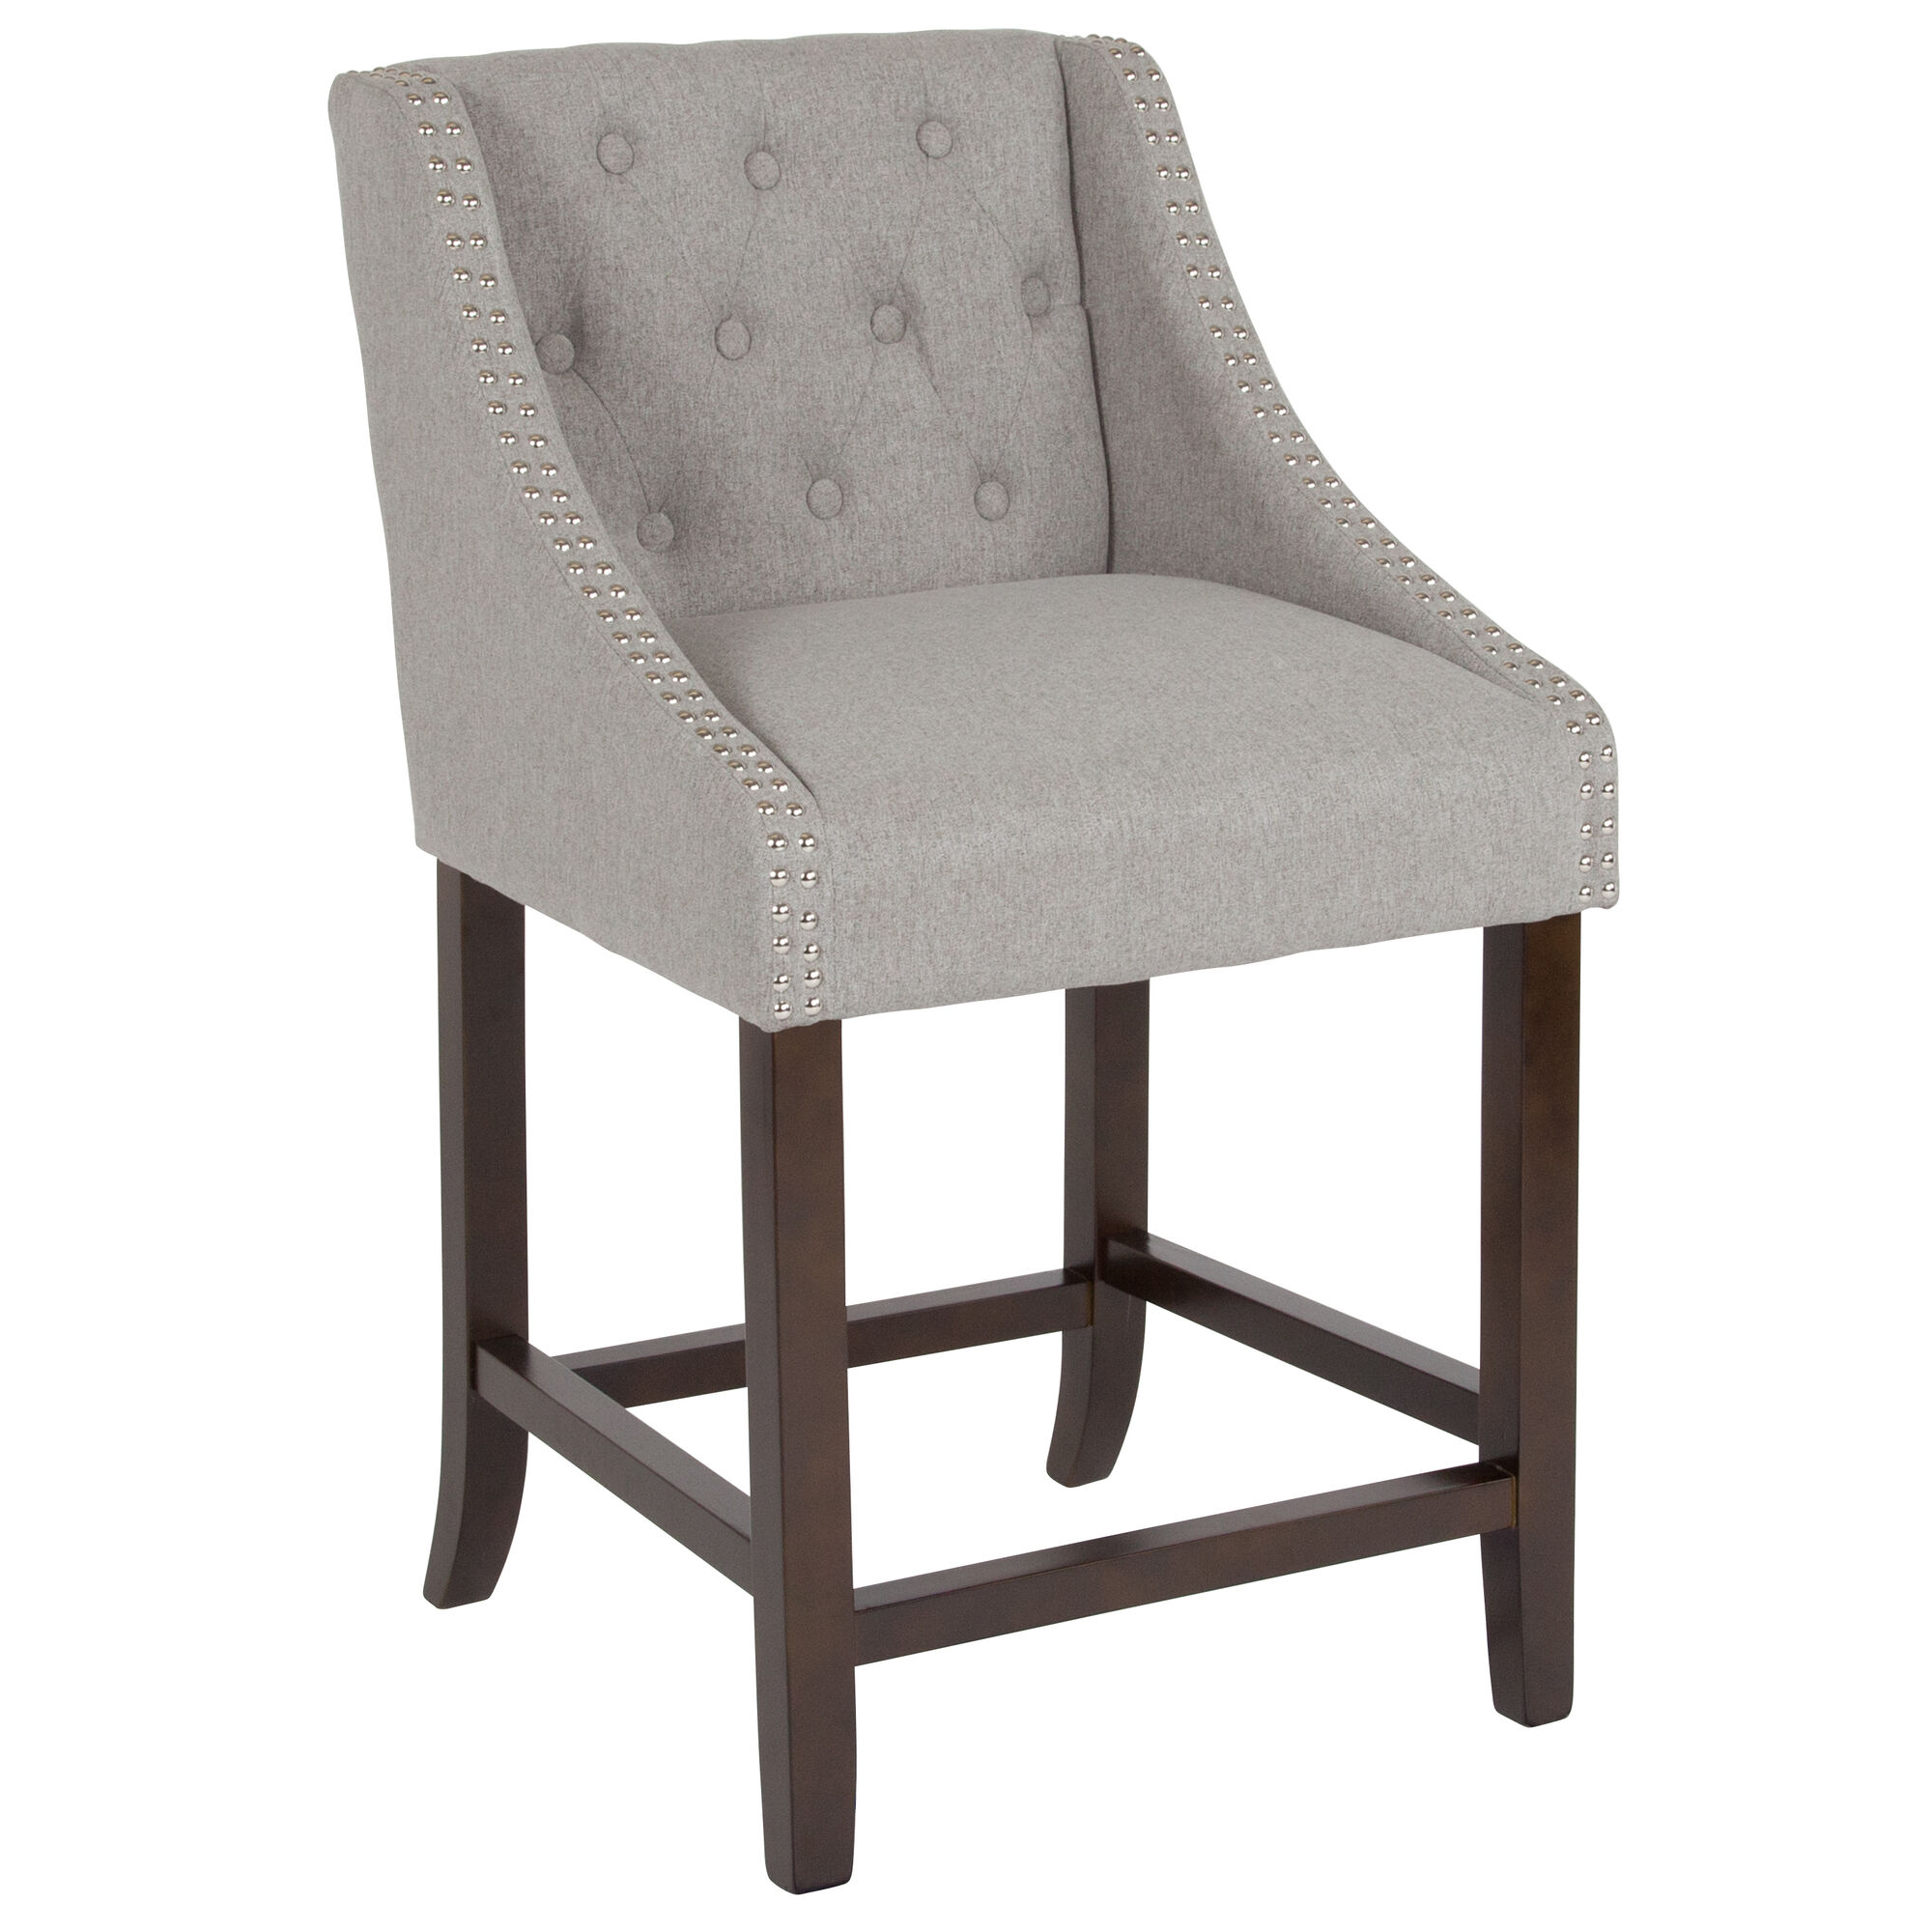 Excellent Carmel Series 24 High Transitional Tufted Walnut Counter Height Stool With Accent Nail Trim In Light Gray Fabric Gamerscity Chair Design For Home Gamerscityorg